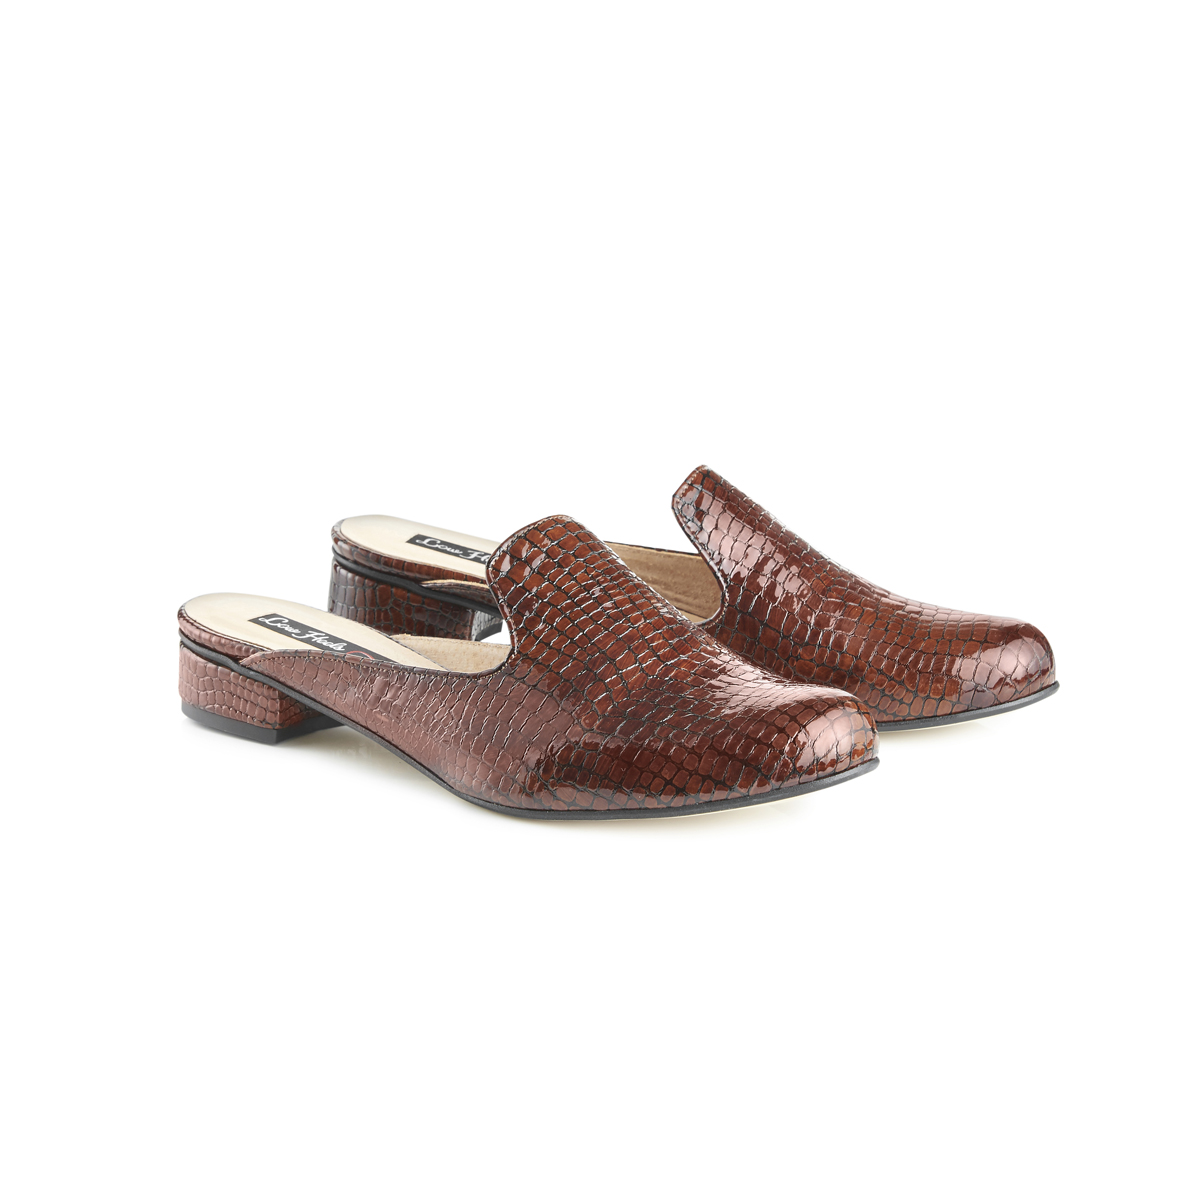 Charlie croc leather flat slip-on mules - brown